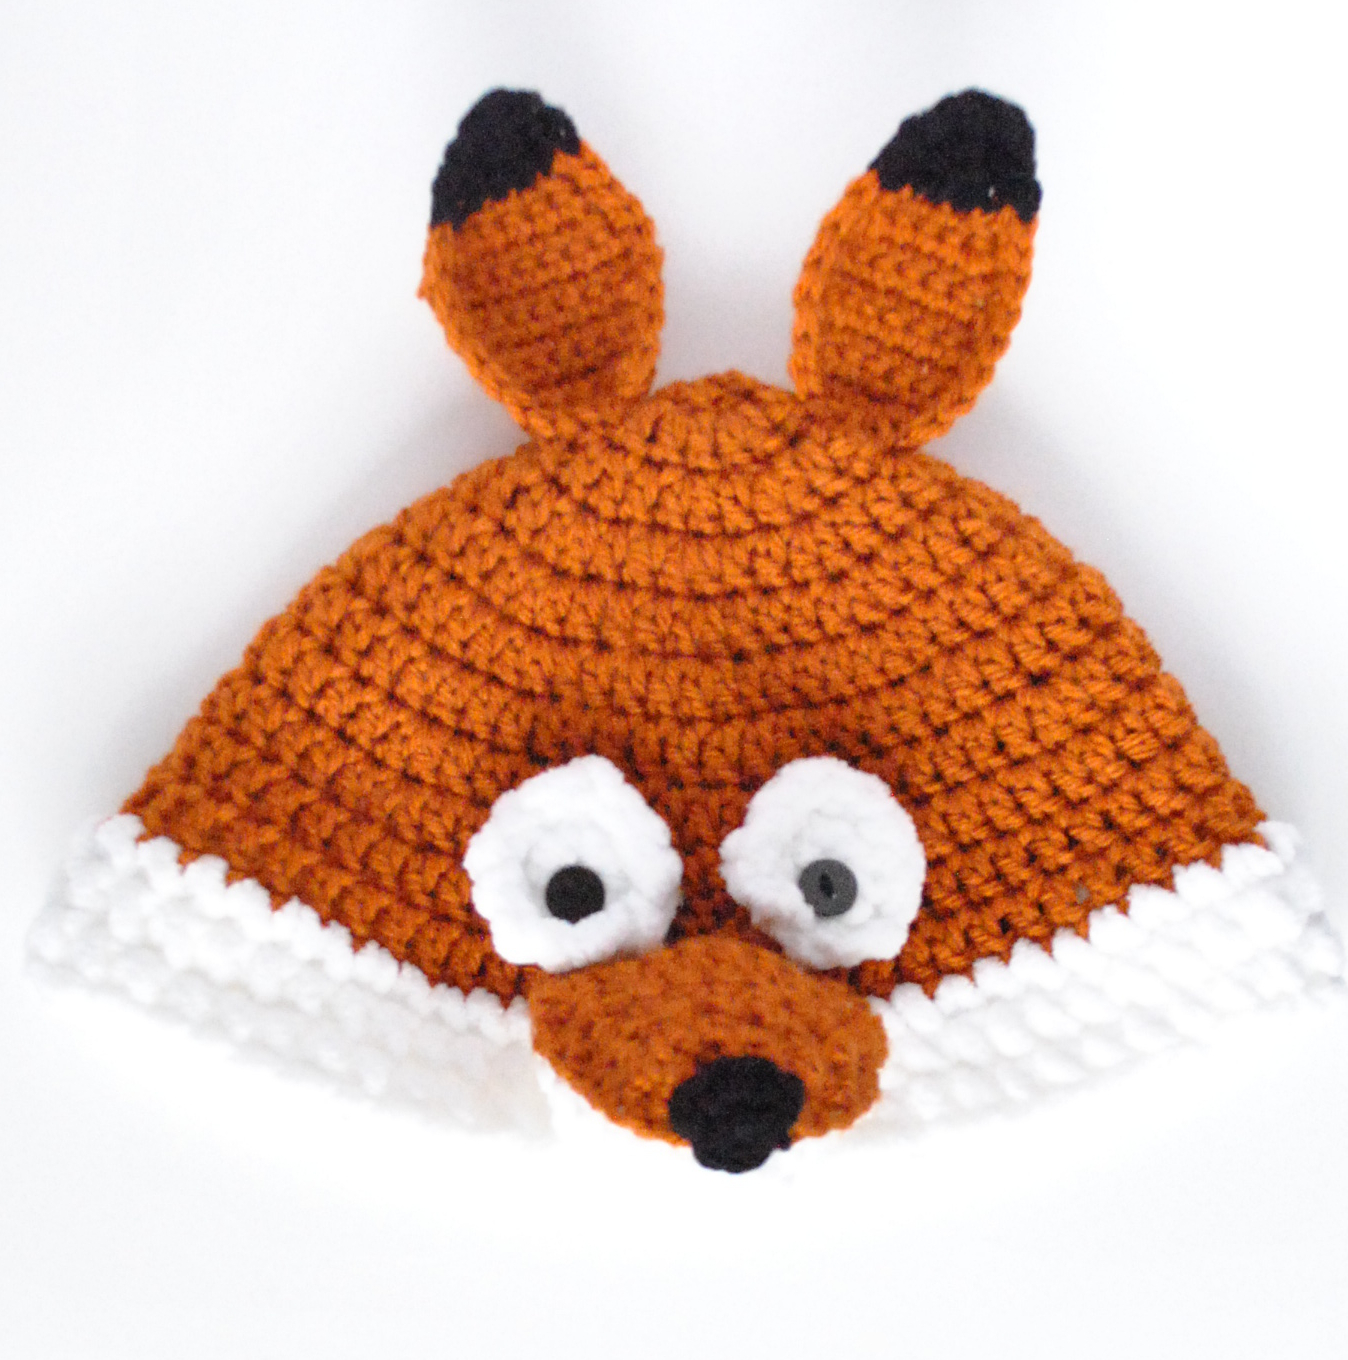 edd1f8d18 Pumpkin hat free crochet pattern | Bowties and fezzes